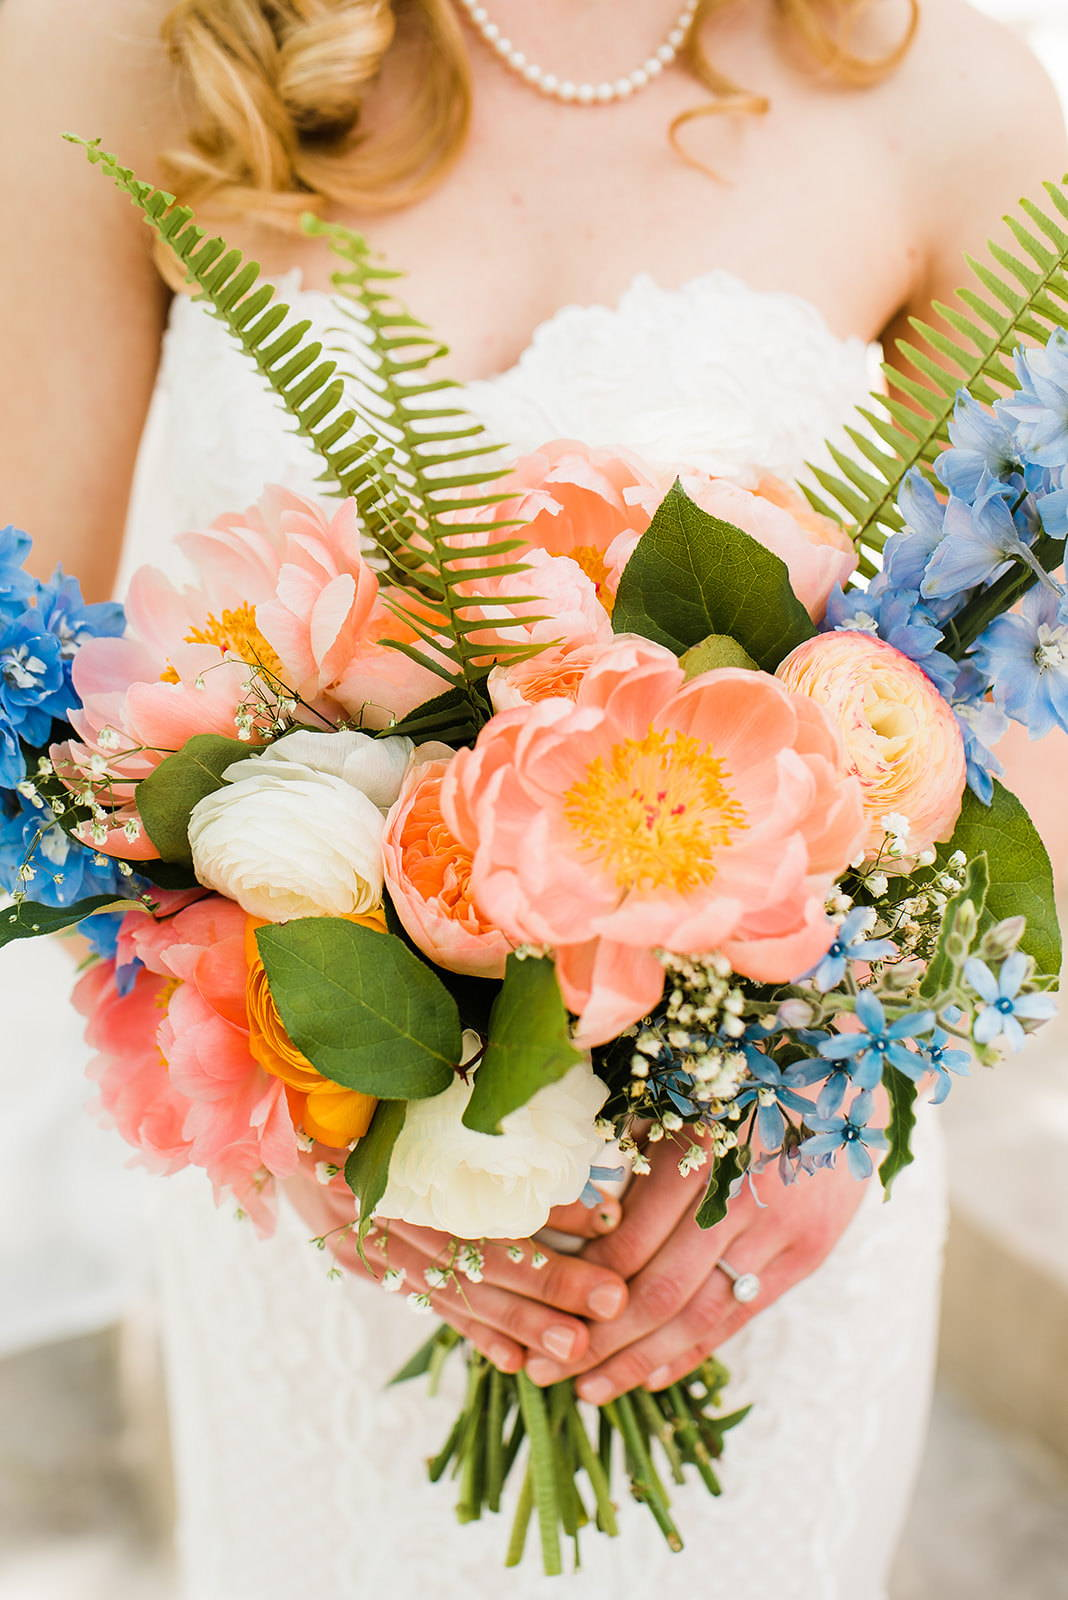 DIY BOUQUET:  Coral Peonies, White and Peach Ranunculus, Sword Fern, Delphinium